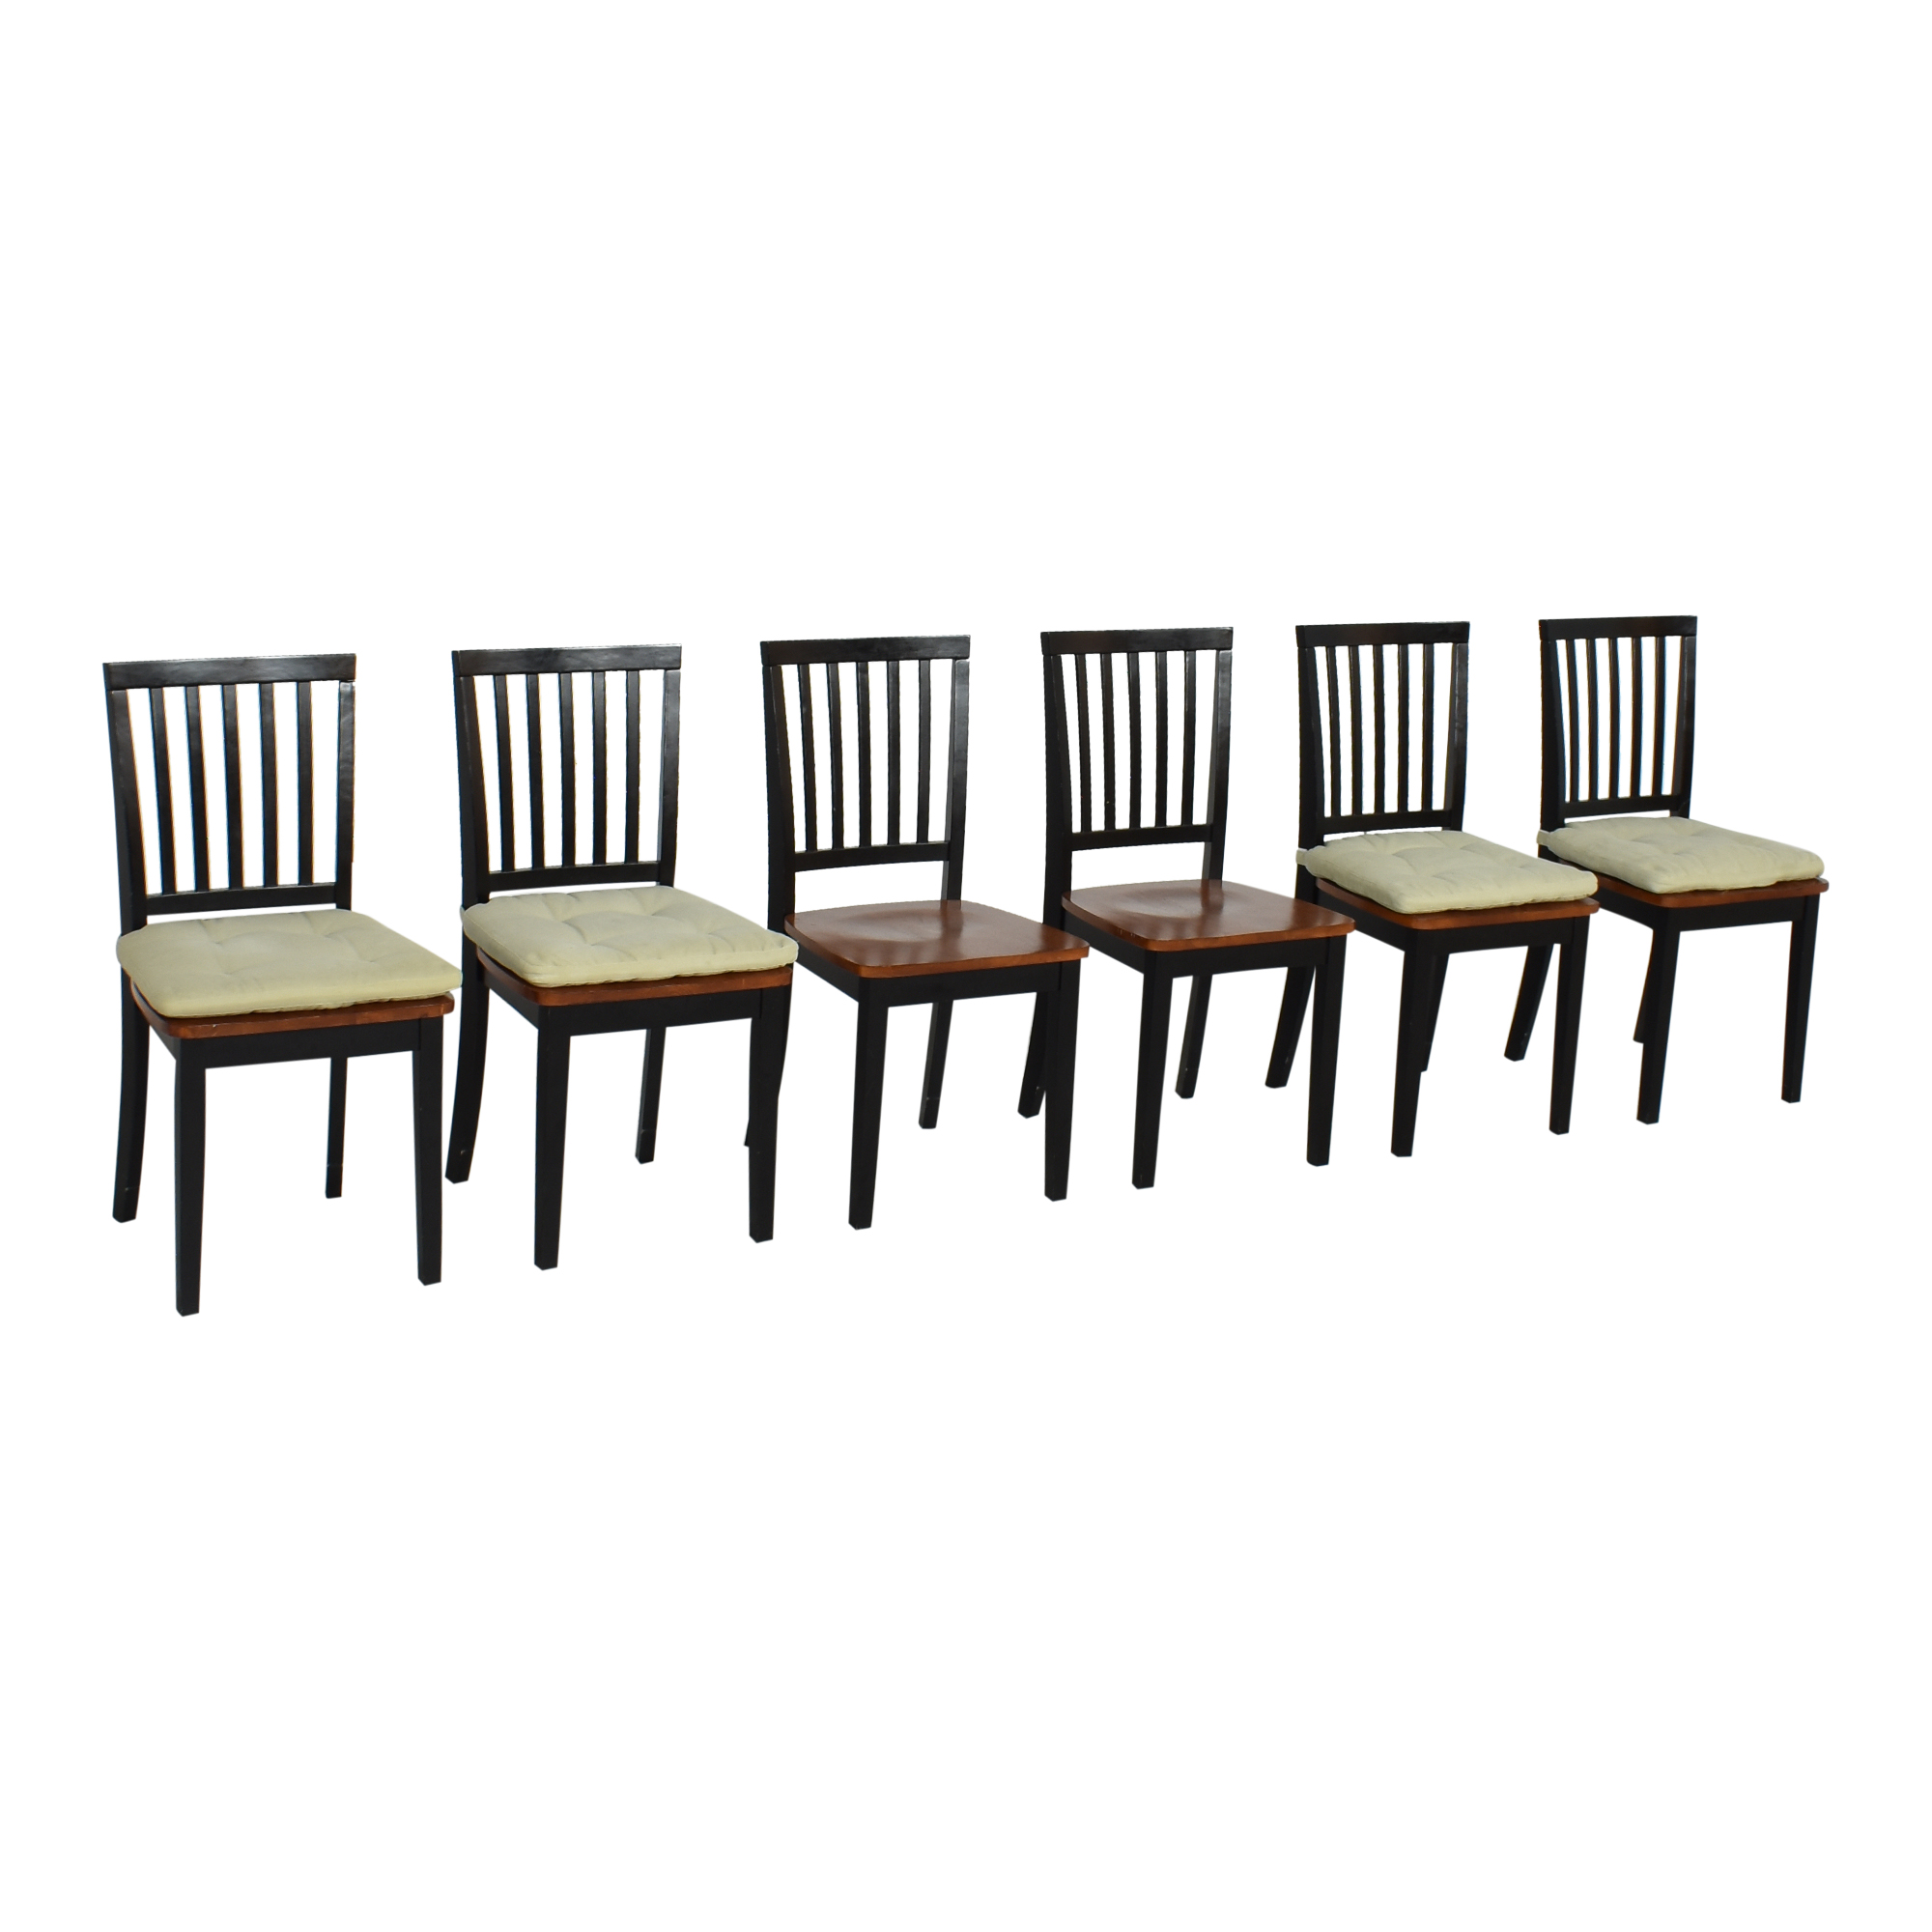 Crate & Barrel Village Bruno Dining Chairs Crate & Barrel